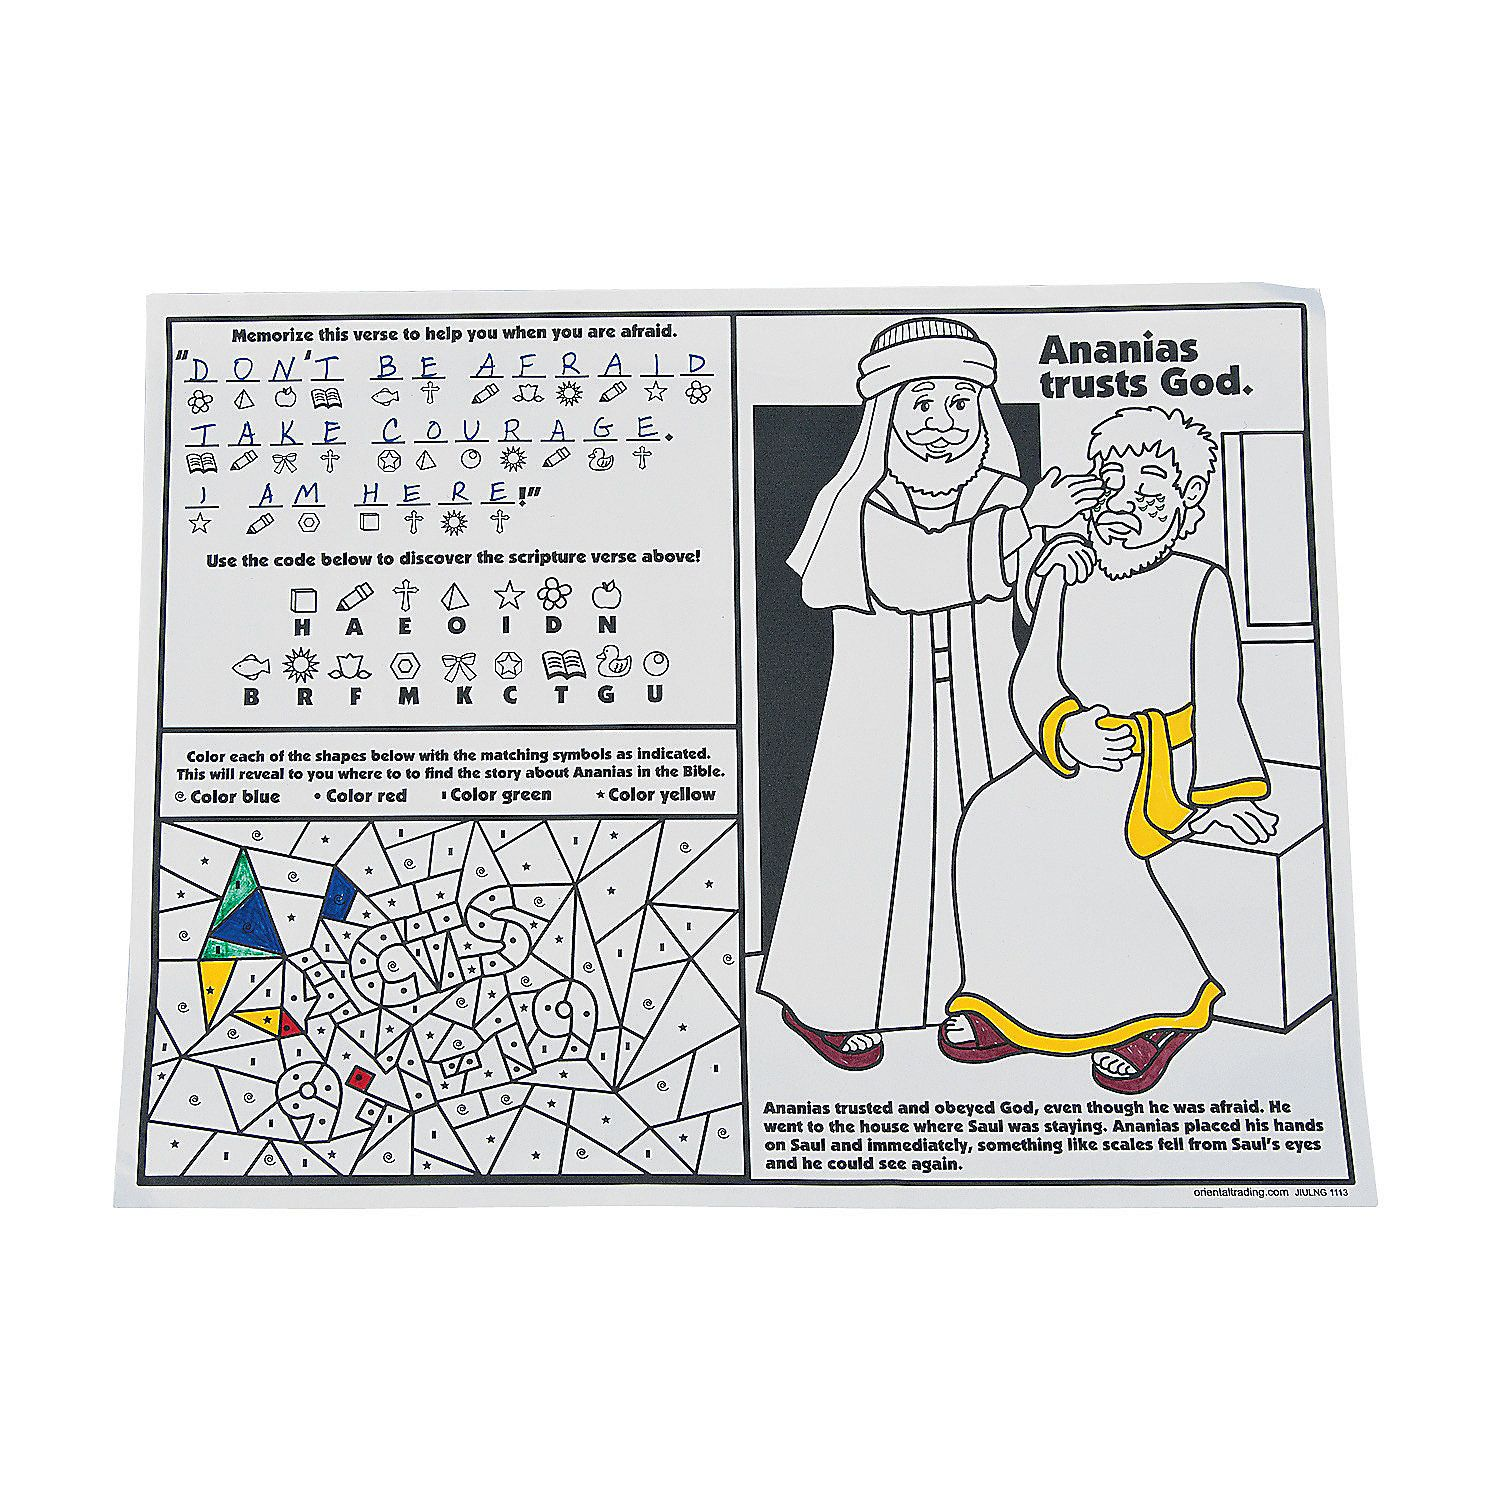 Childrens coloring sheet of saul and ananias - Educate Children On Important Biblical Tales In A Fun And Interactive Way Add These Ananias Helps Saul Activity Sheets To Vbs Or Church Activity Time And